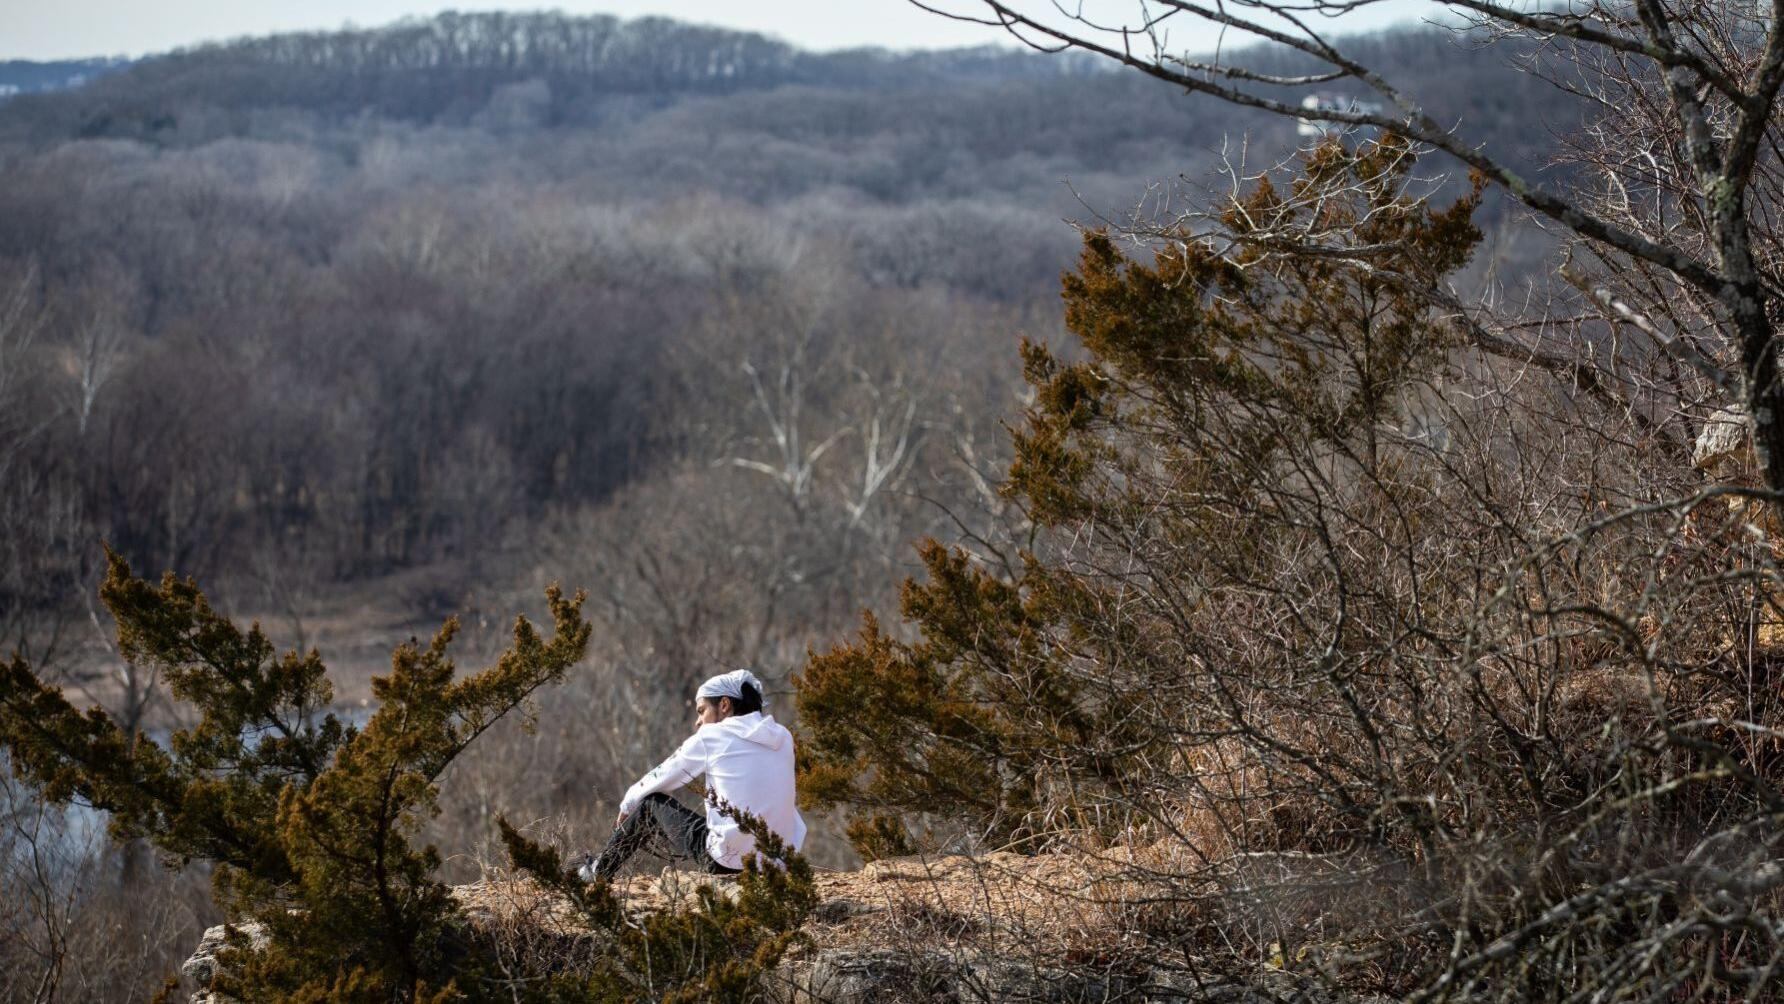 Thanks in part to the pandemic, visits to Missouri state parks rebounded in 2020